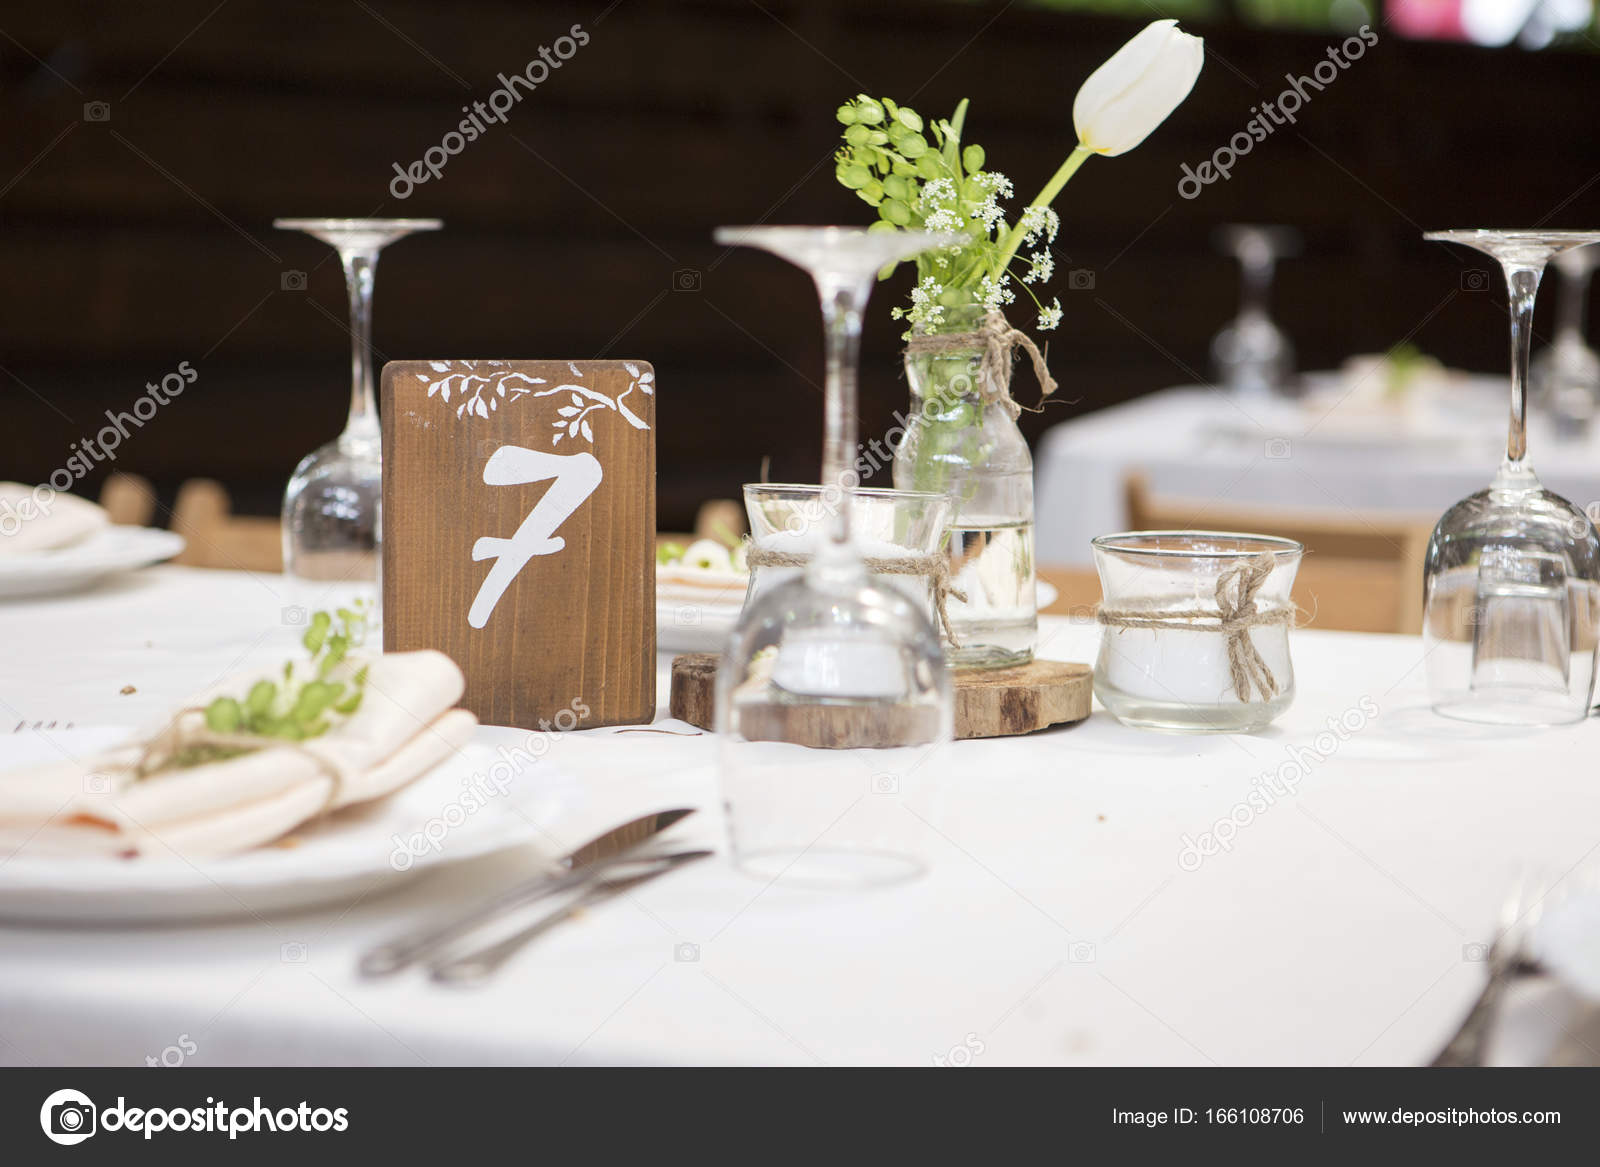 Simple but luxury rich table setting for a wedding celebration i u2014 Stock Photo & Simple but luxury rich table setting for a wedding celebration i ...